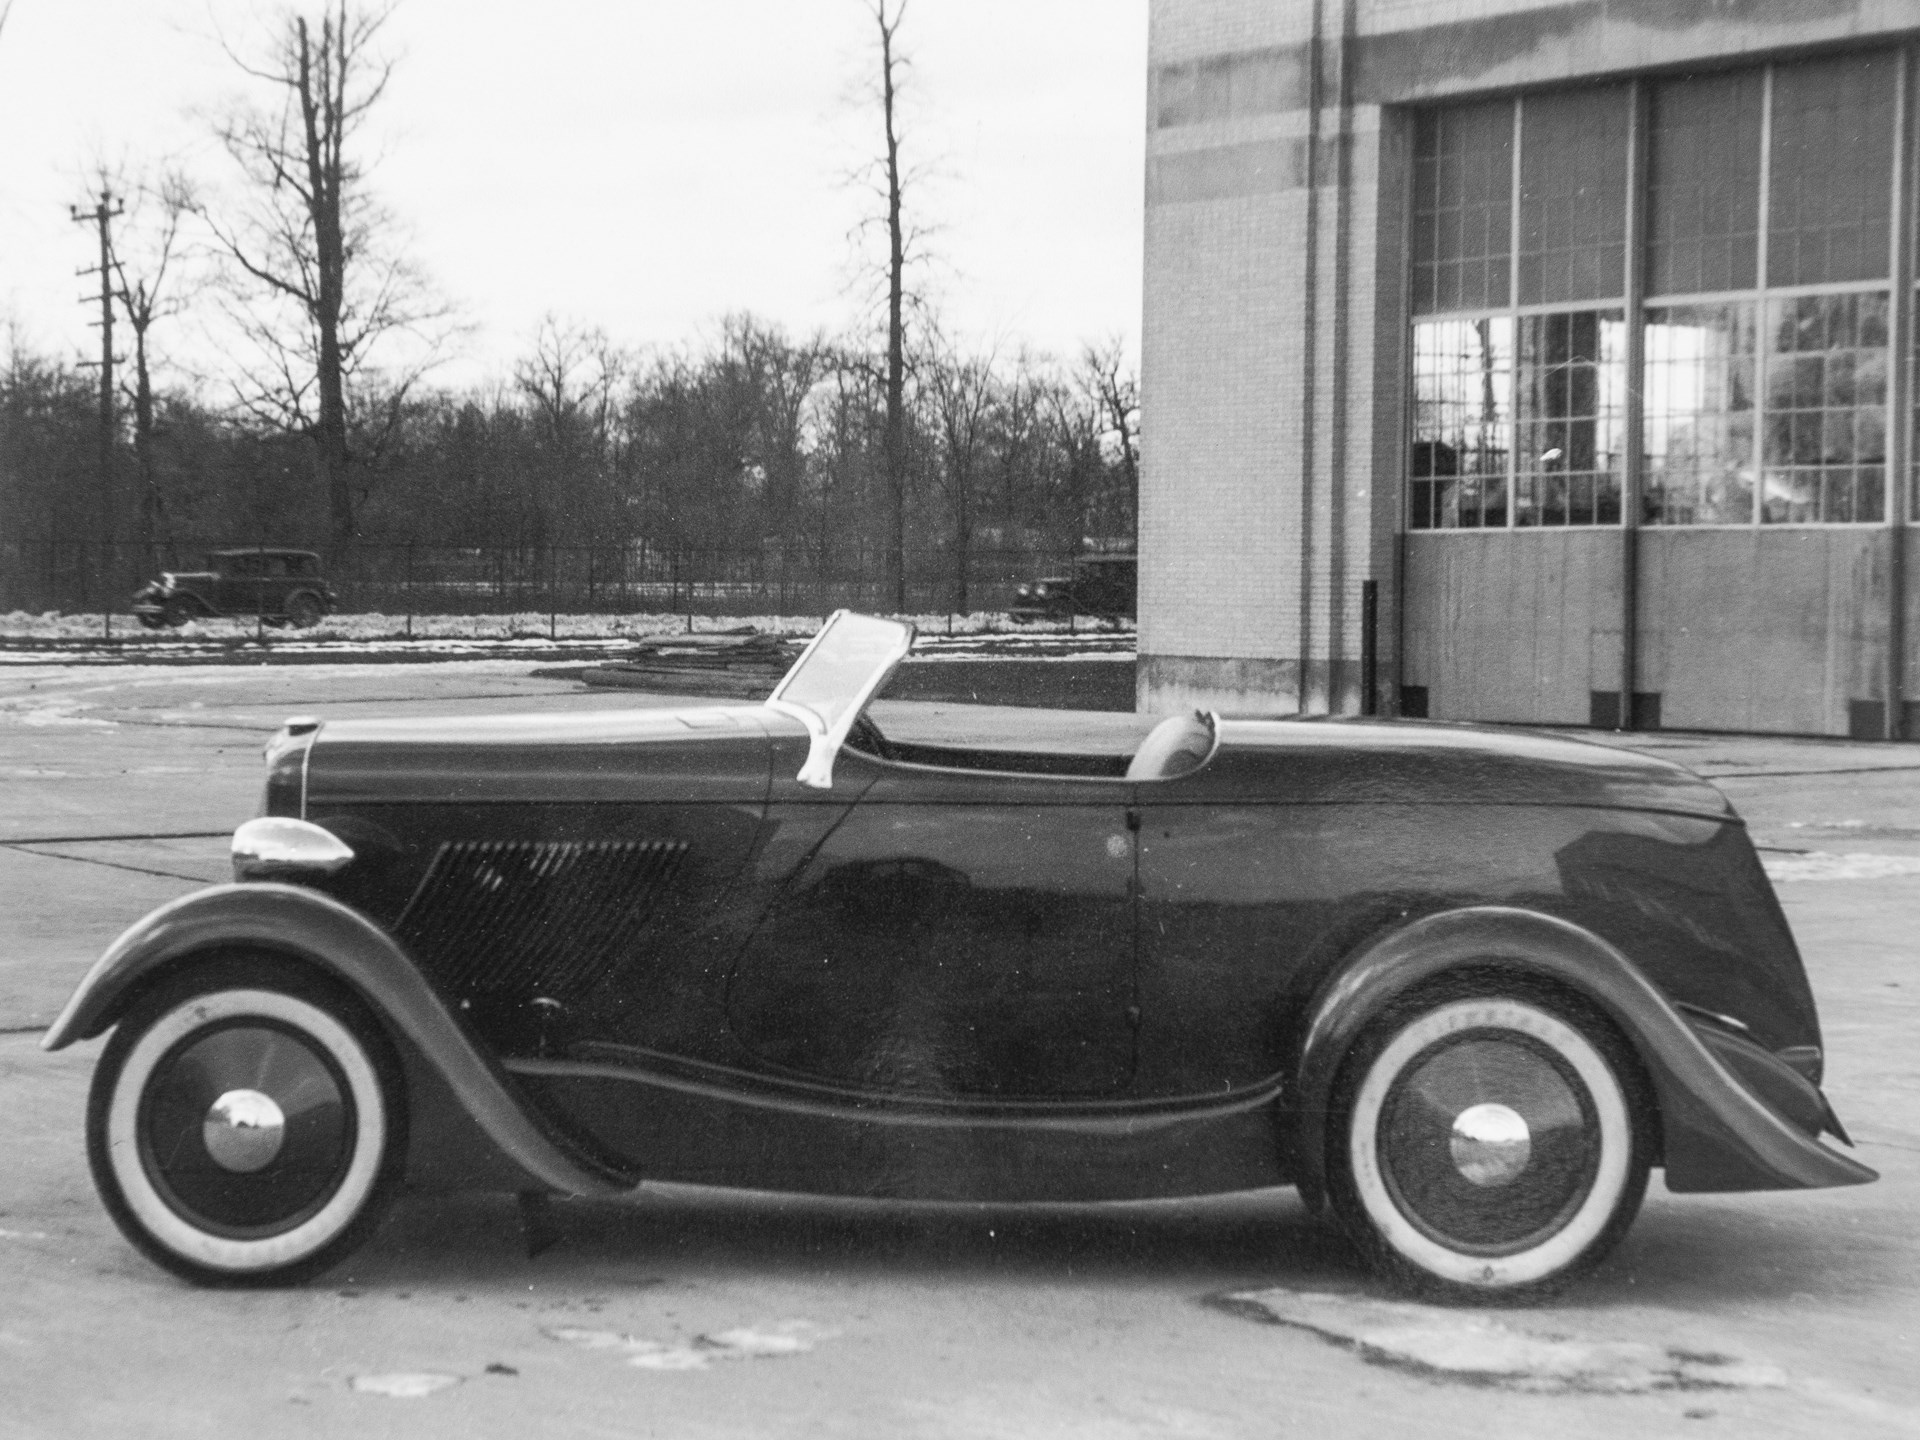 The Edsel Ford Speedster as it appeared when new.